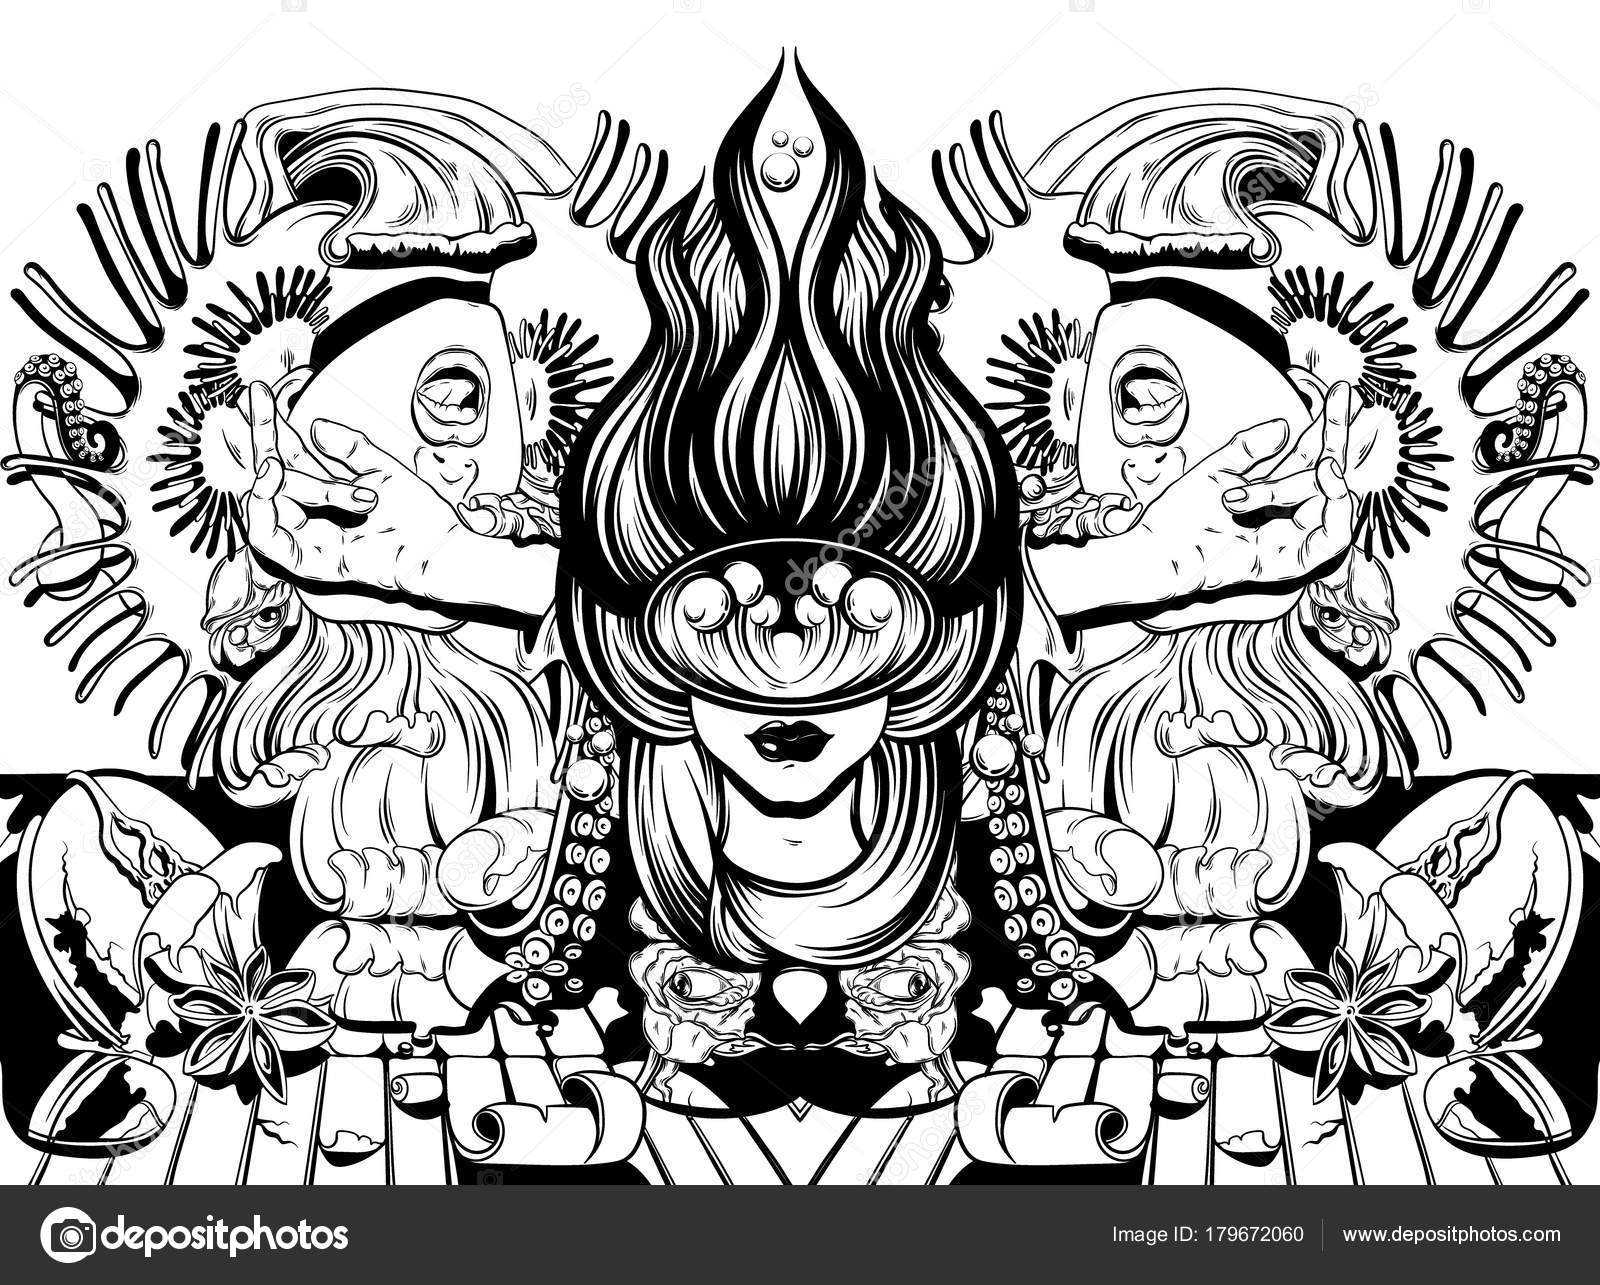 1600x1285 Vector Hand Drawn Illustration Screaming Girl Tentacles Roses